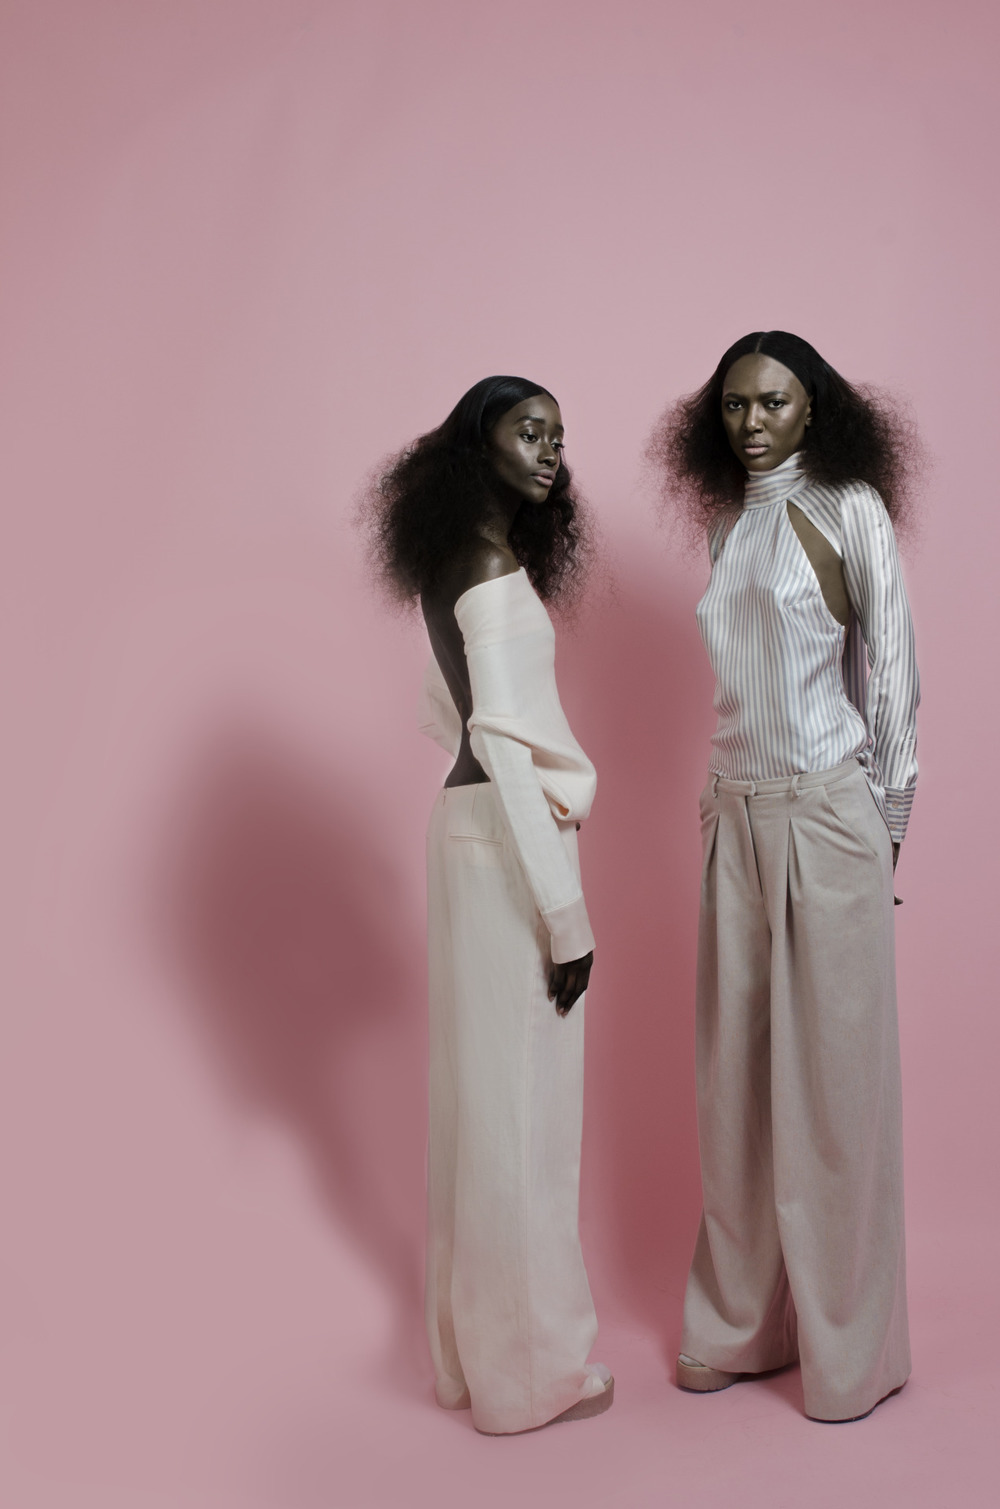 Sienna King & DJ Smith for OMONDI AW15 Shot By: Mambu Bayoh #sienna king #rechoomondi